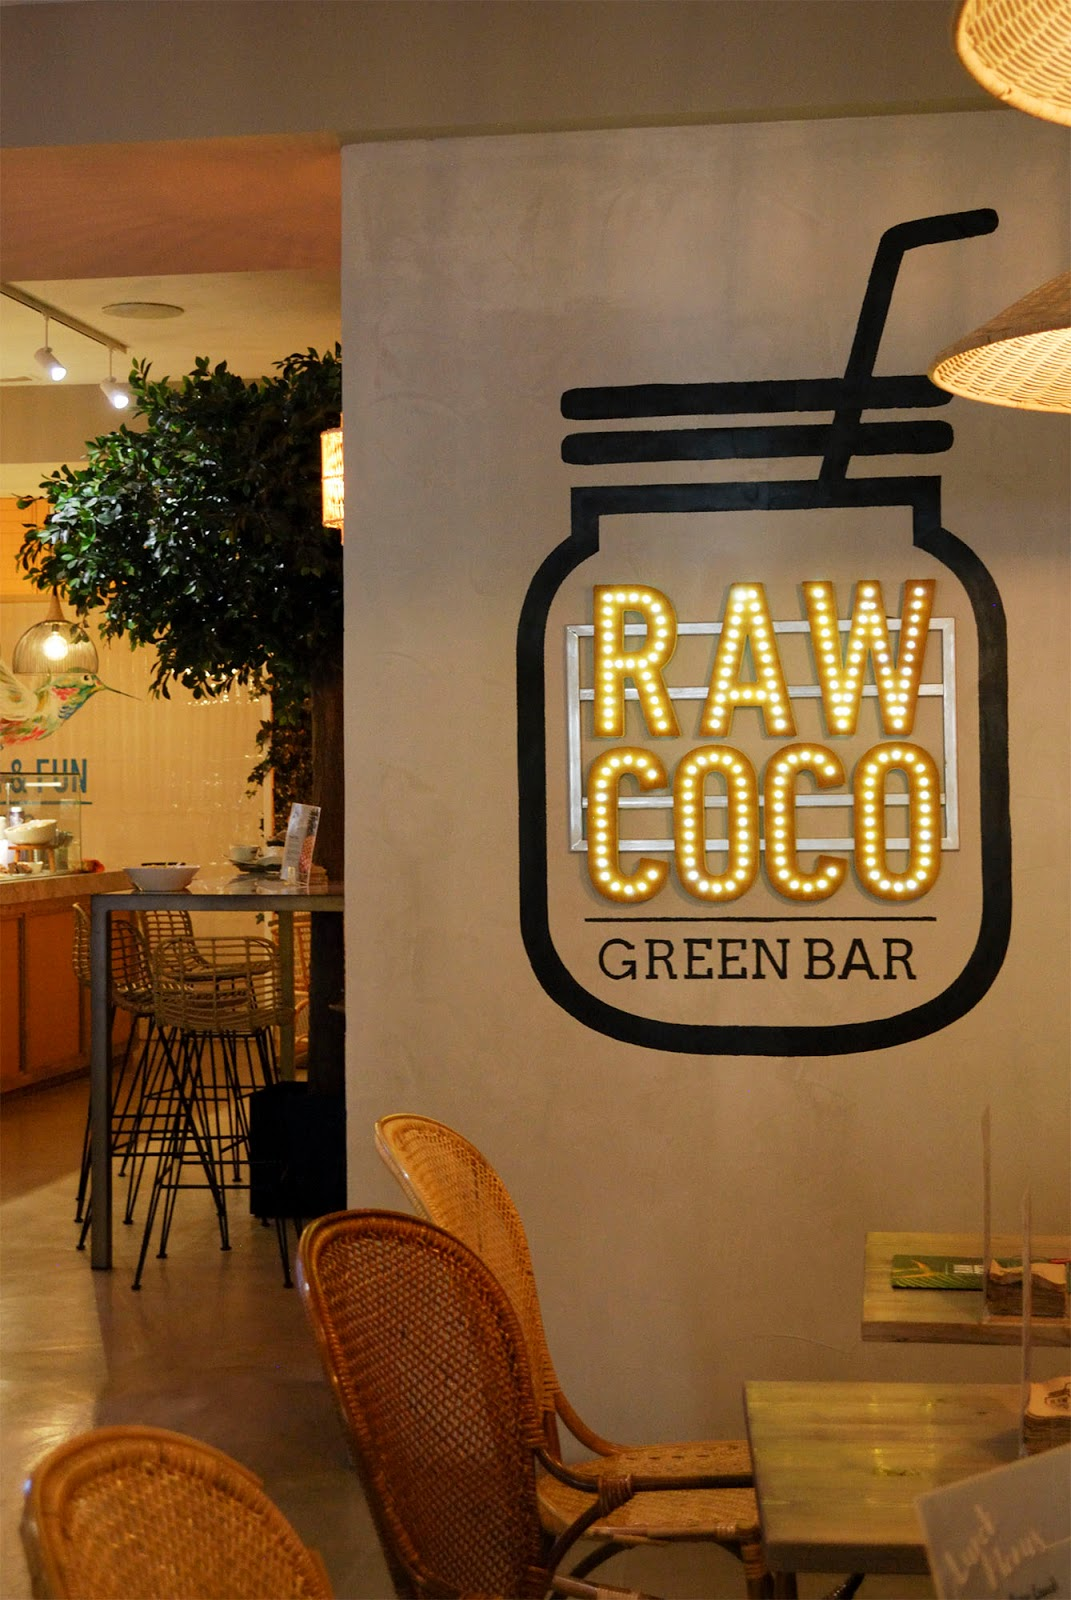 raw coco breakfast brunch madrid healthy restaurant cafe juice açai bowl smoothie